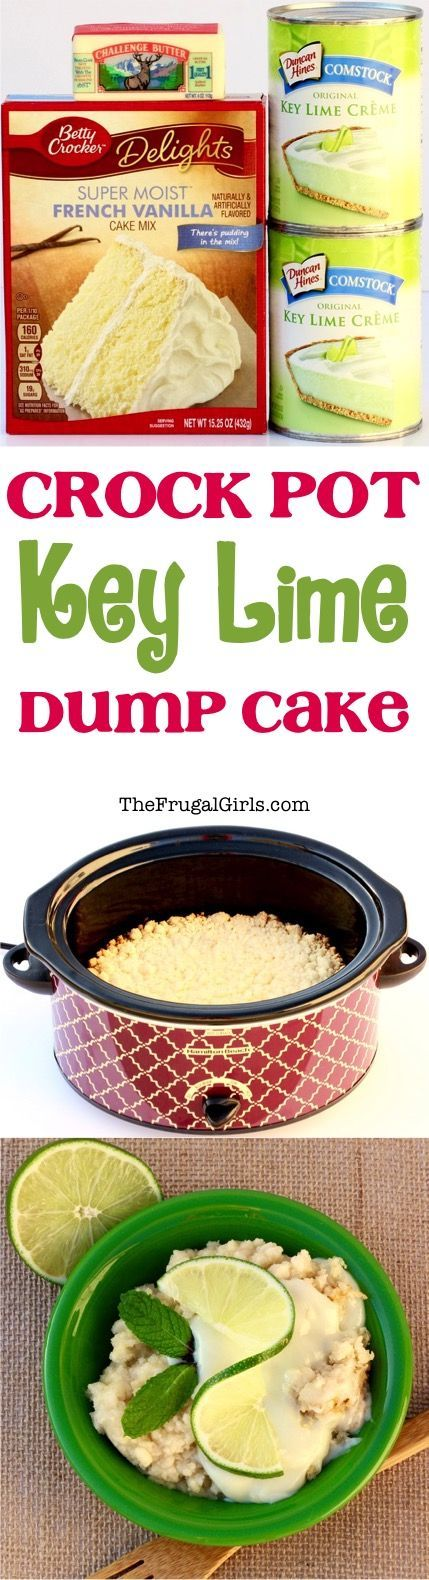 Crock Pot Key Lime Dump Cake Recipe! just a few easy ingredients and you've got Key Lime Heaven in your Slow Cooker... the perfect dessert for your next party or cookout!